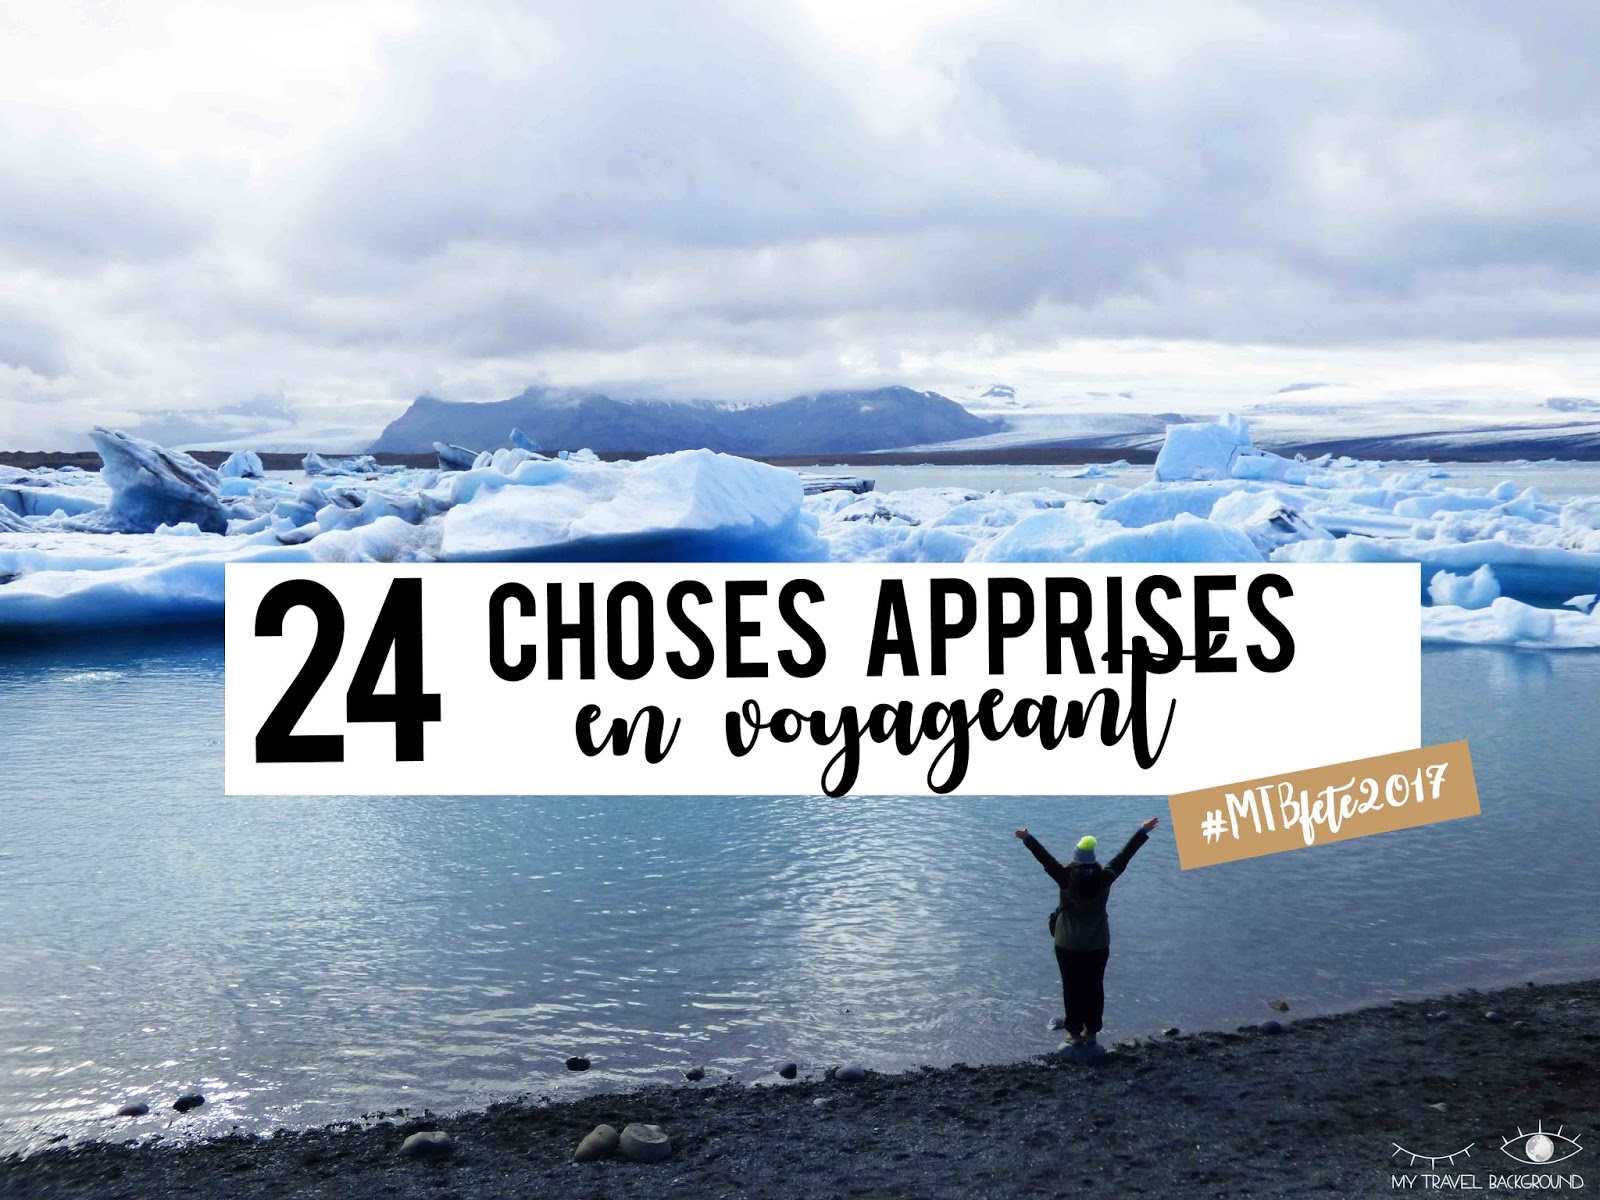 My Travel Background : 24 choses que j'ai apprises en voyageant